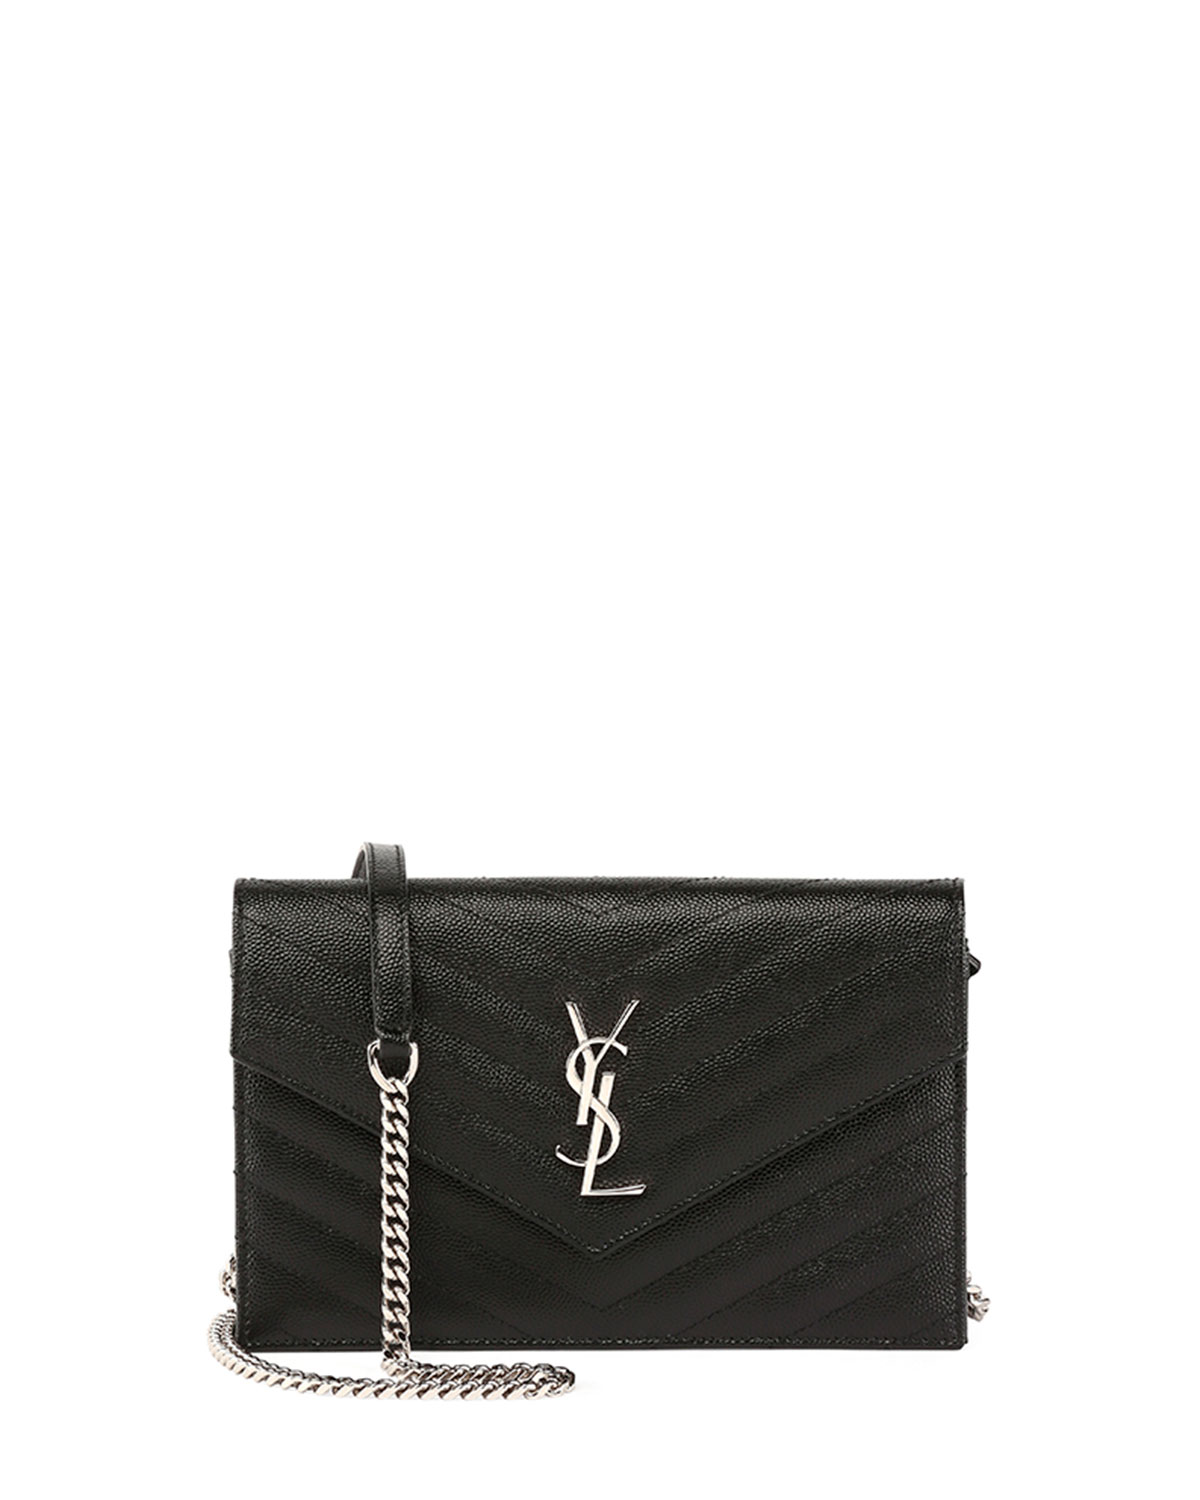 Monogram Wallet-on-Chain, Black, Women's - Saint Laurent